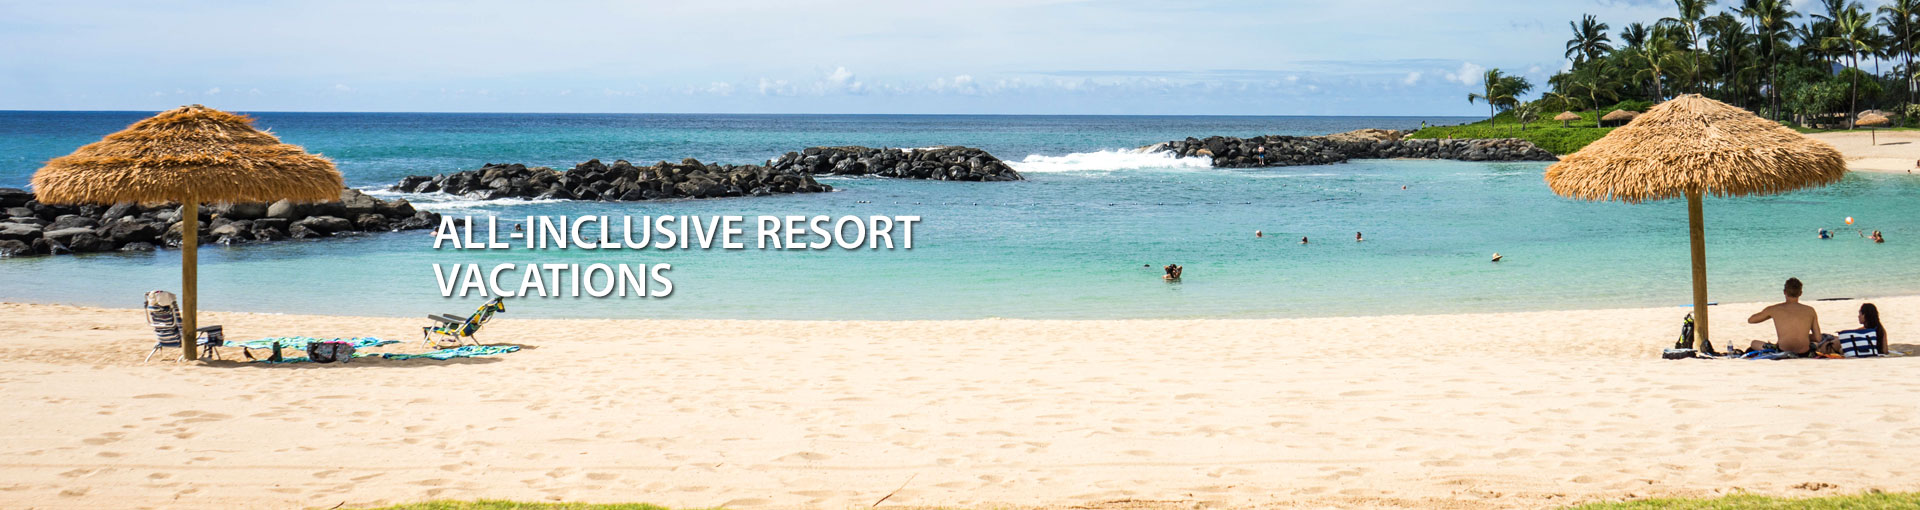 All-Inclusive Resort Vacations Banner